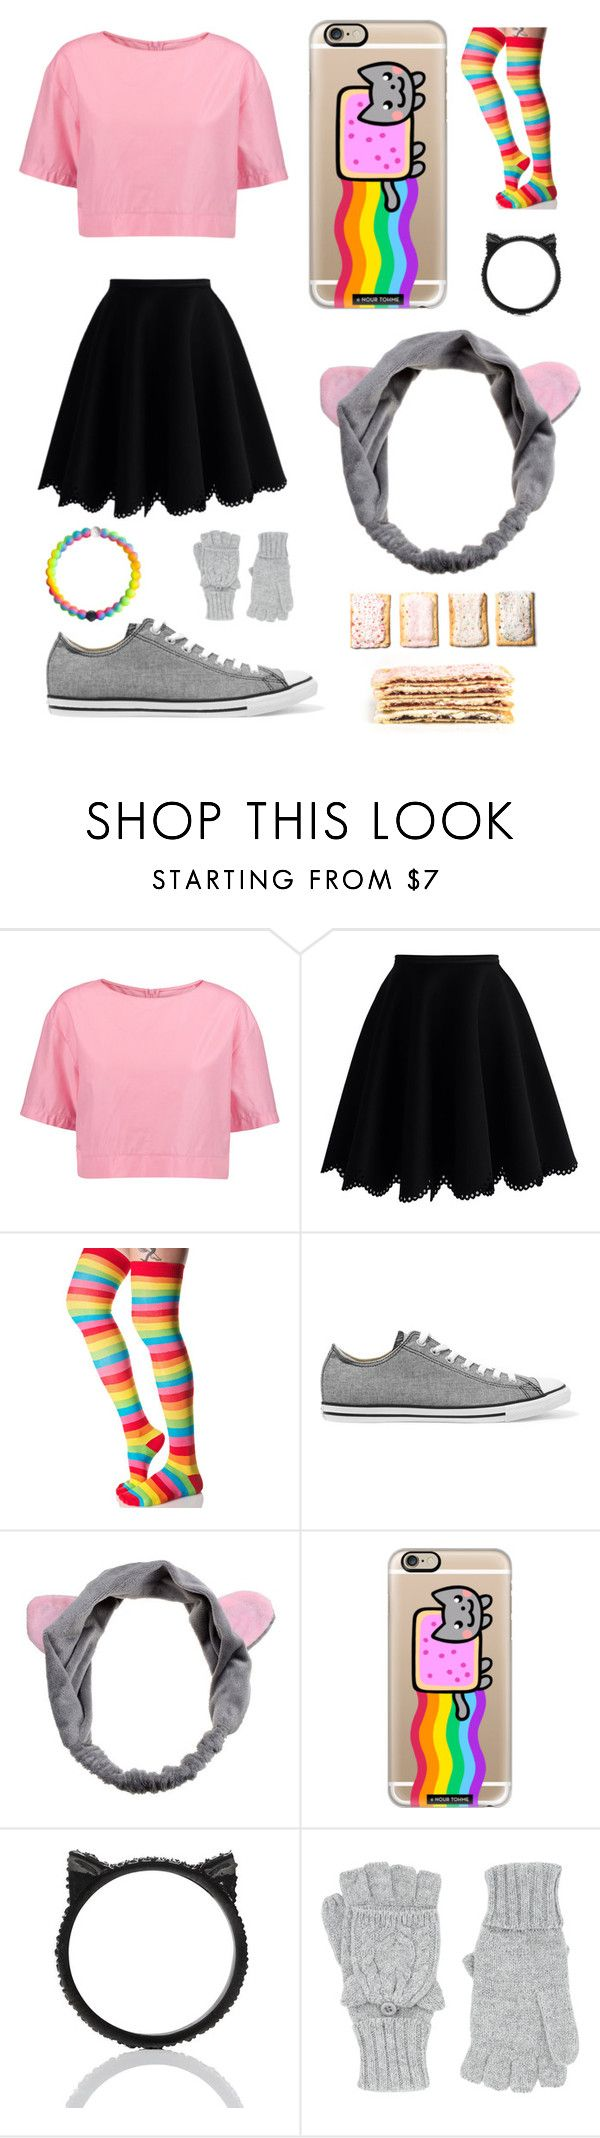 """""""DIY Halloween Costume Nyan Cat"""" by pattibear ❤ liked on Polyvore featuring Marni, Chicwish, Leg Avenue, Converse, Casetify, Kate Spade and Accessorize"""